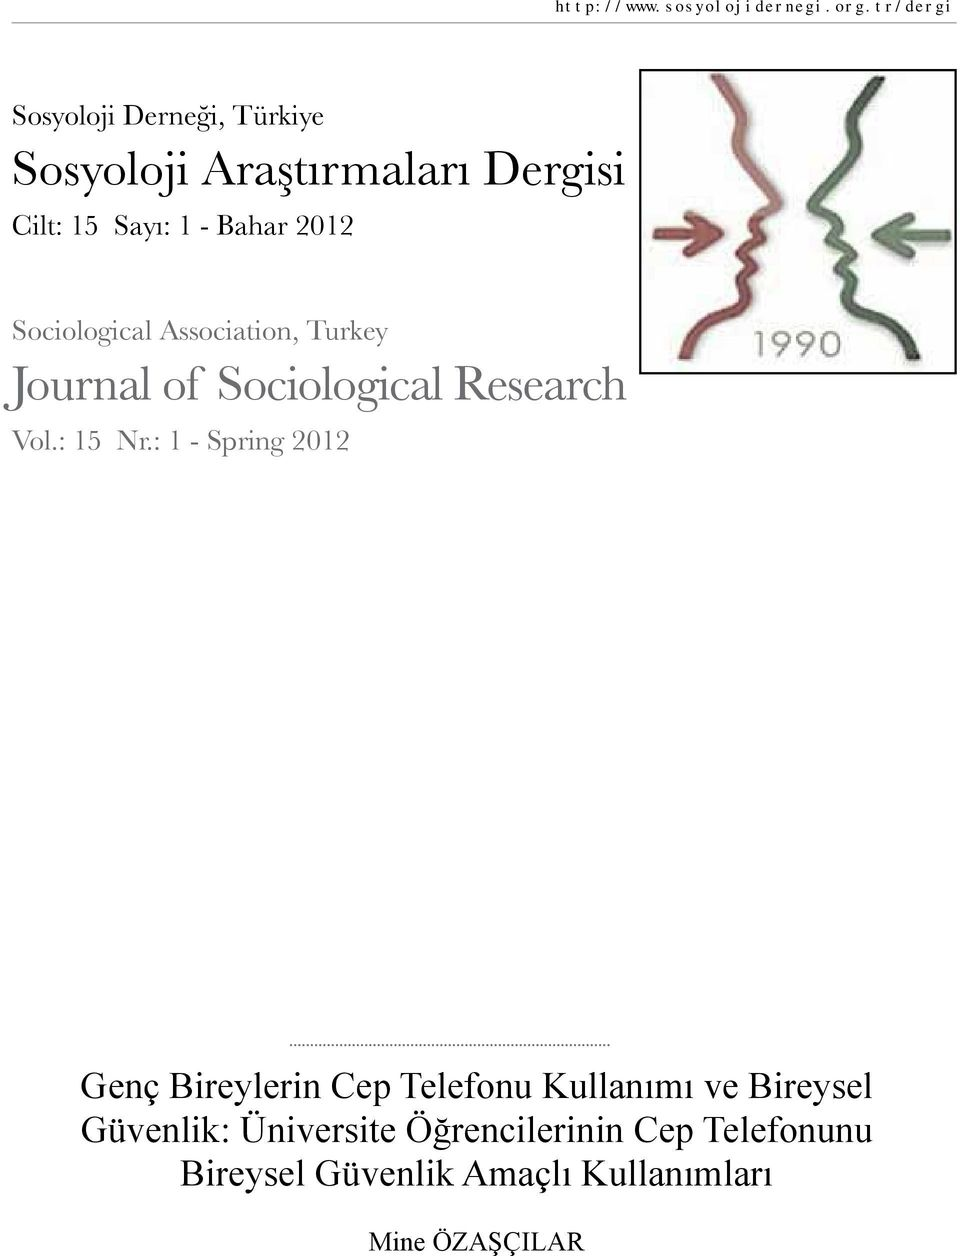 2012 Sociological Association, Turkey Journal of Sociological Research Vol.: 15 Nr.